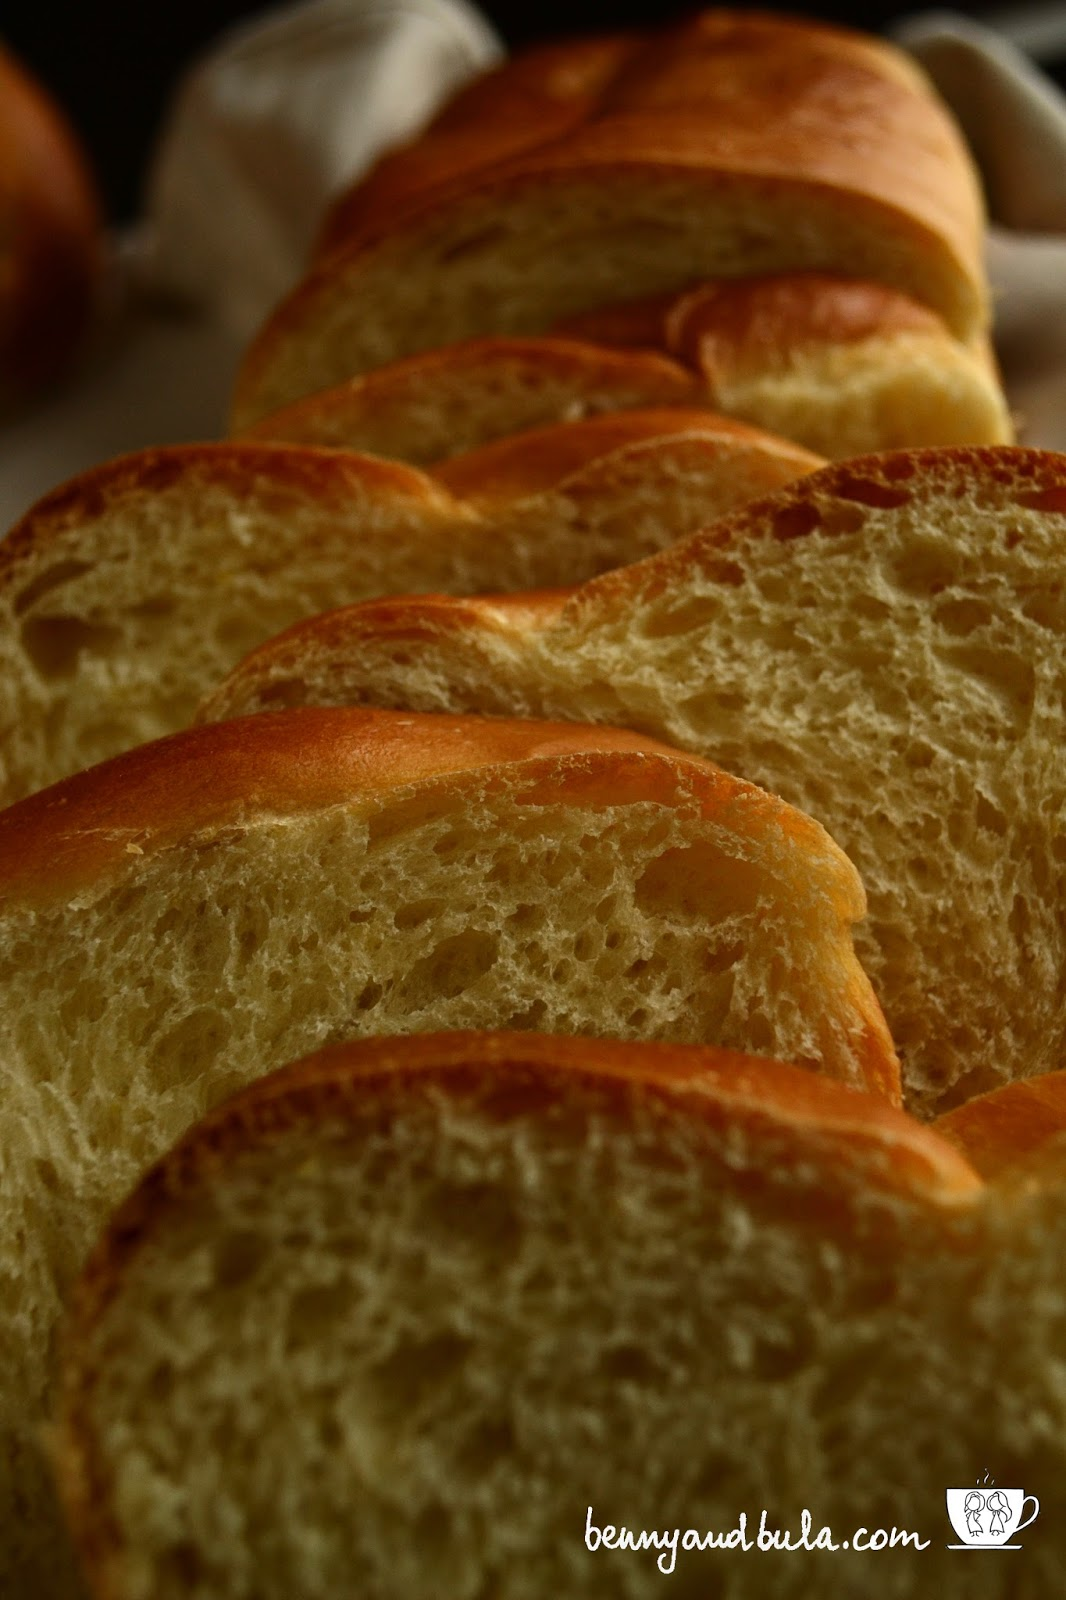 ricetta facile pan brioche/easy brioche bread recipe